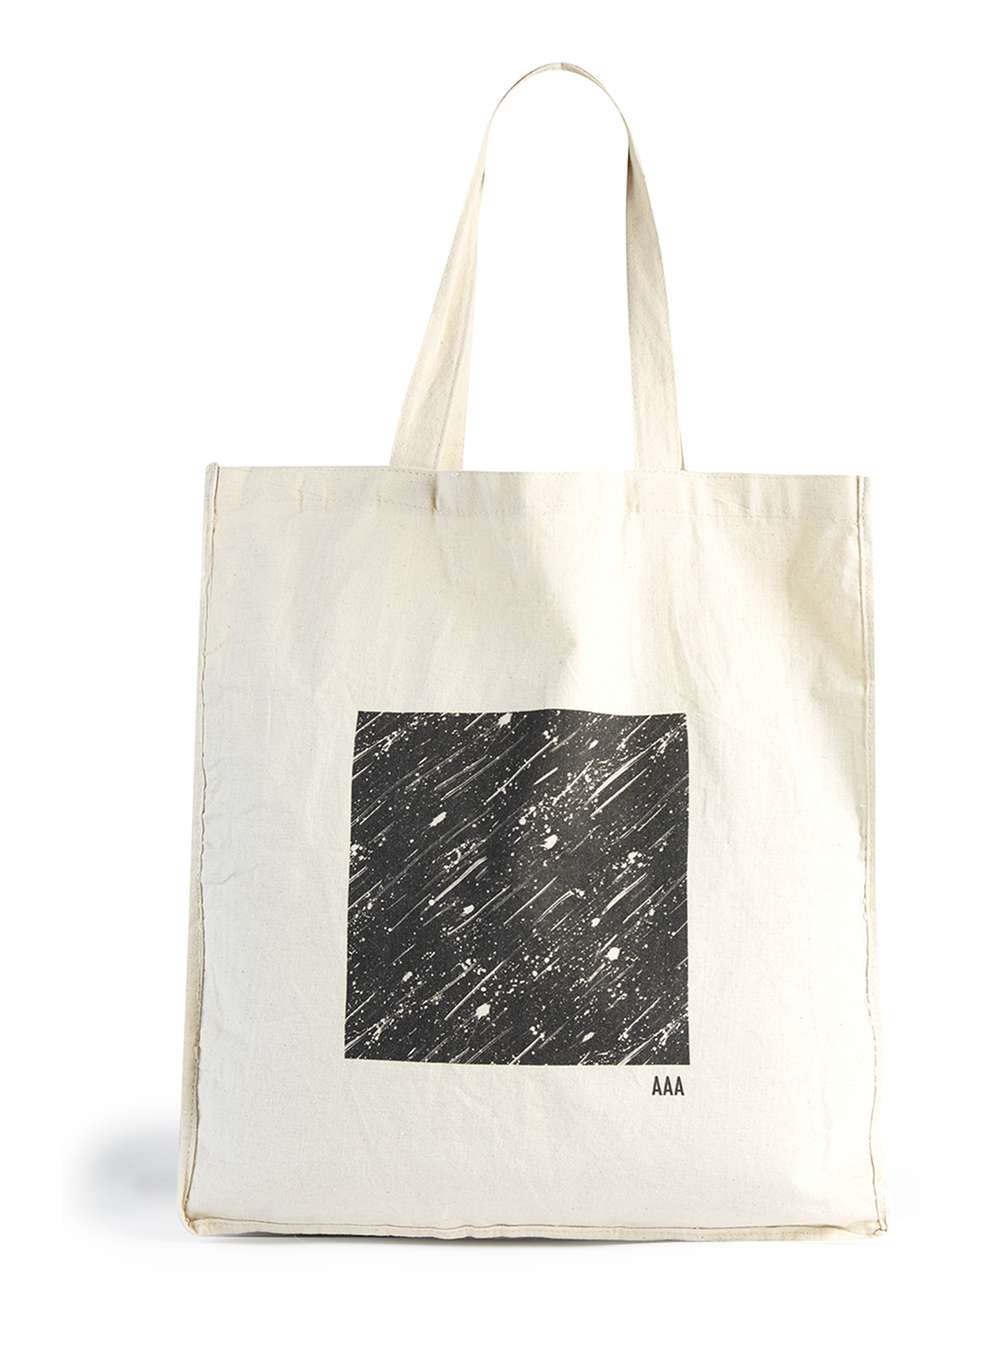 TOPMAN AAA White Shopper Bag, £10